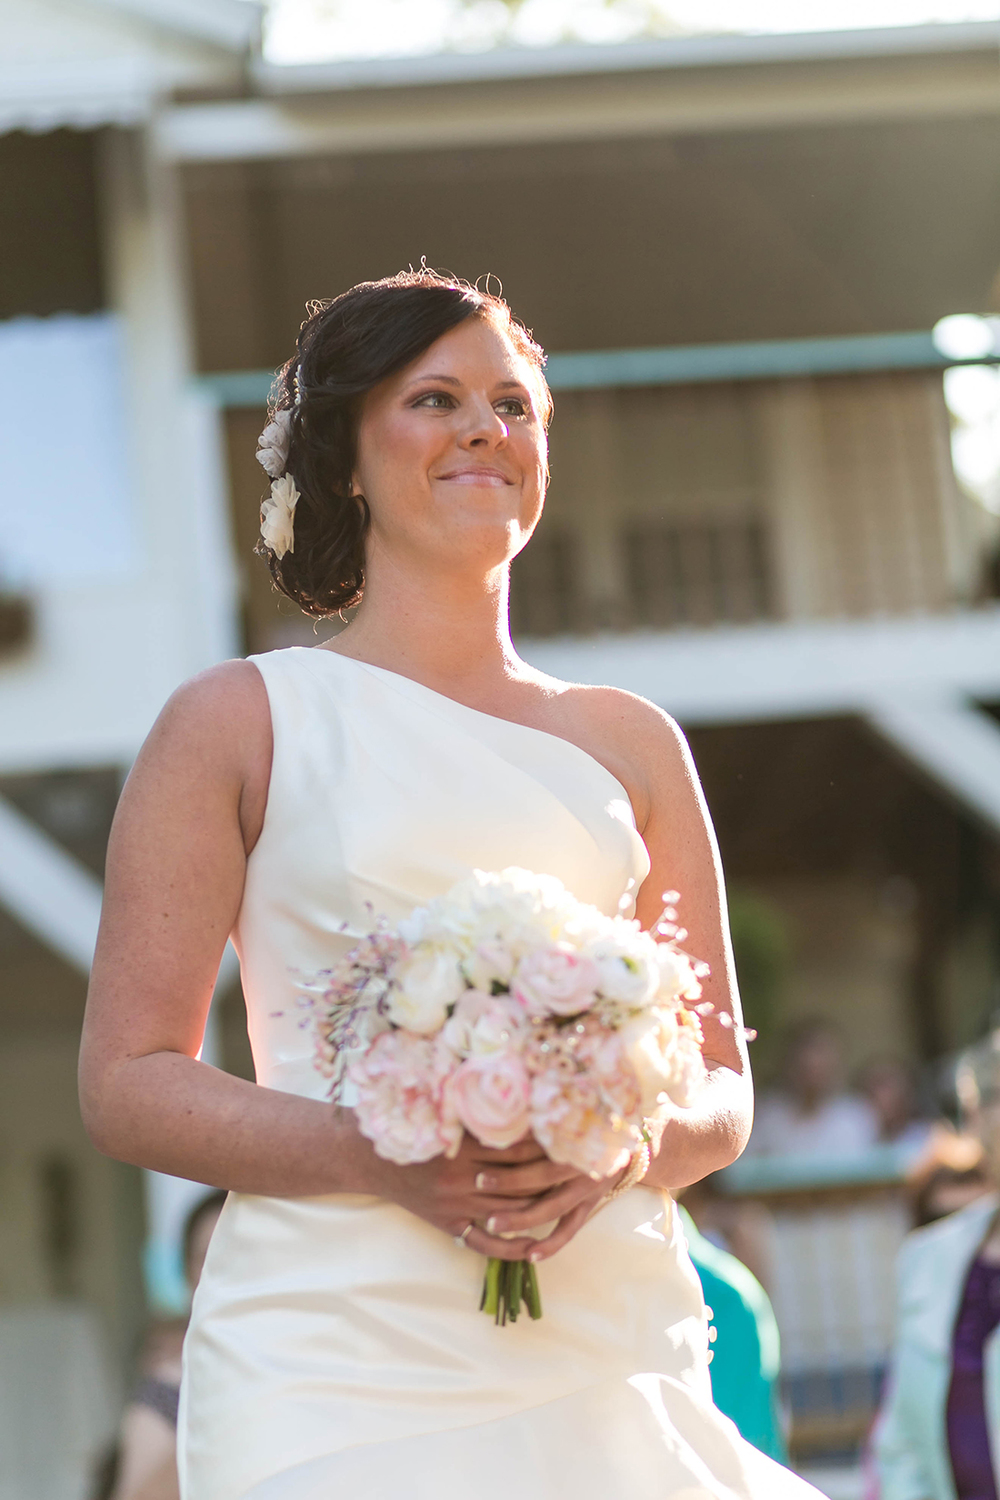 adam-szarmack-middleburg-wedding-photographer-IMG_1445.jpg